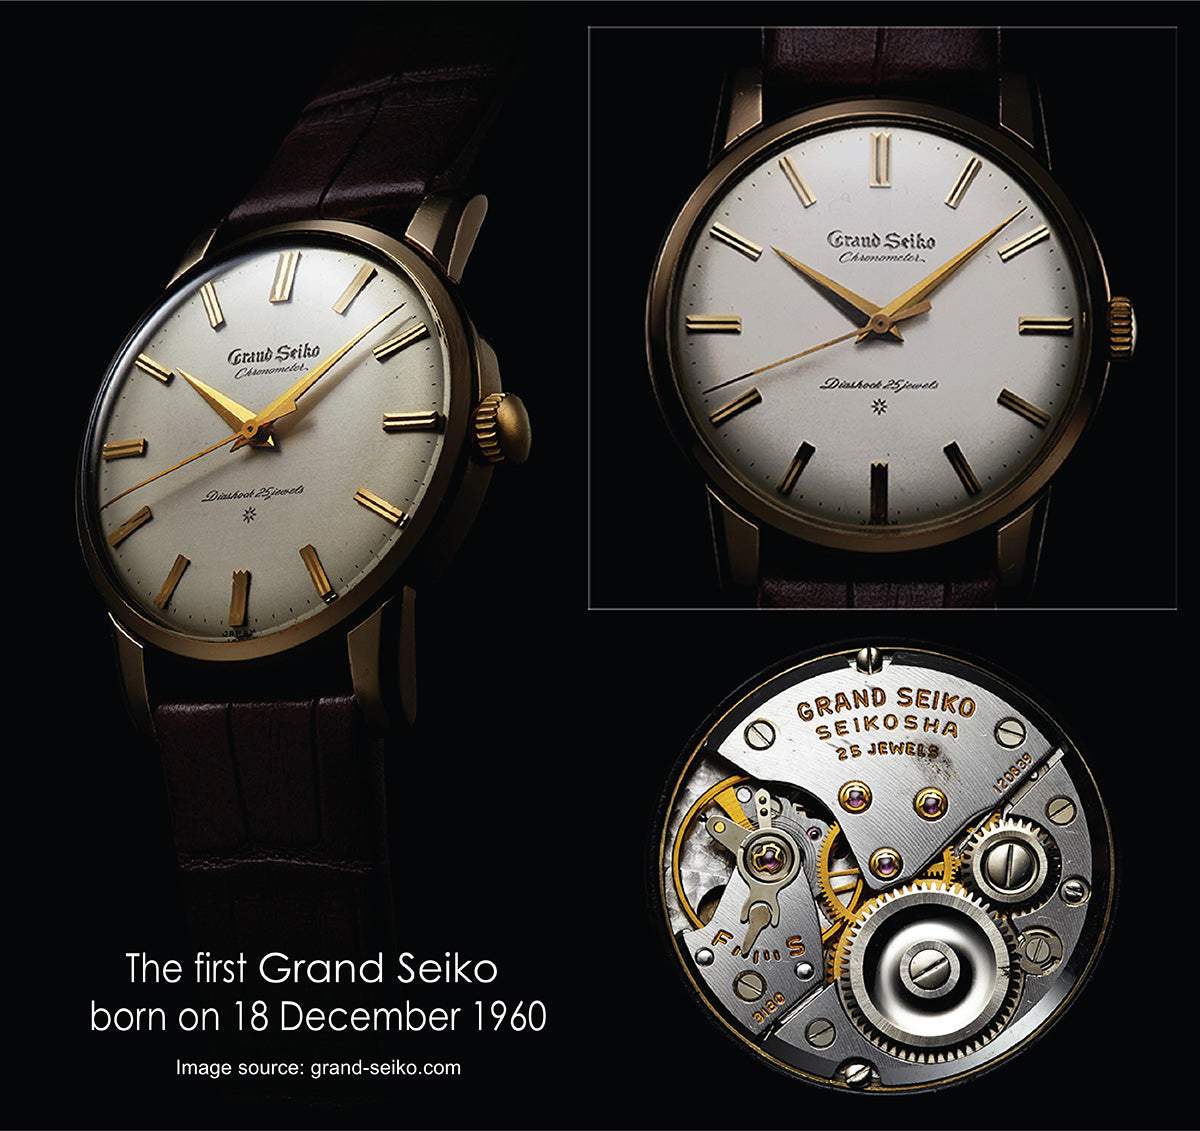 The first Grand Seiko born on 18 December 1960